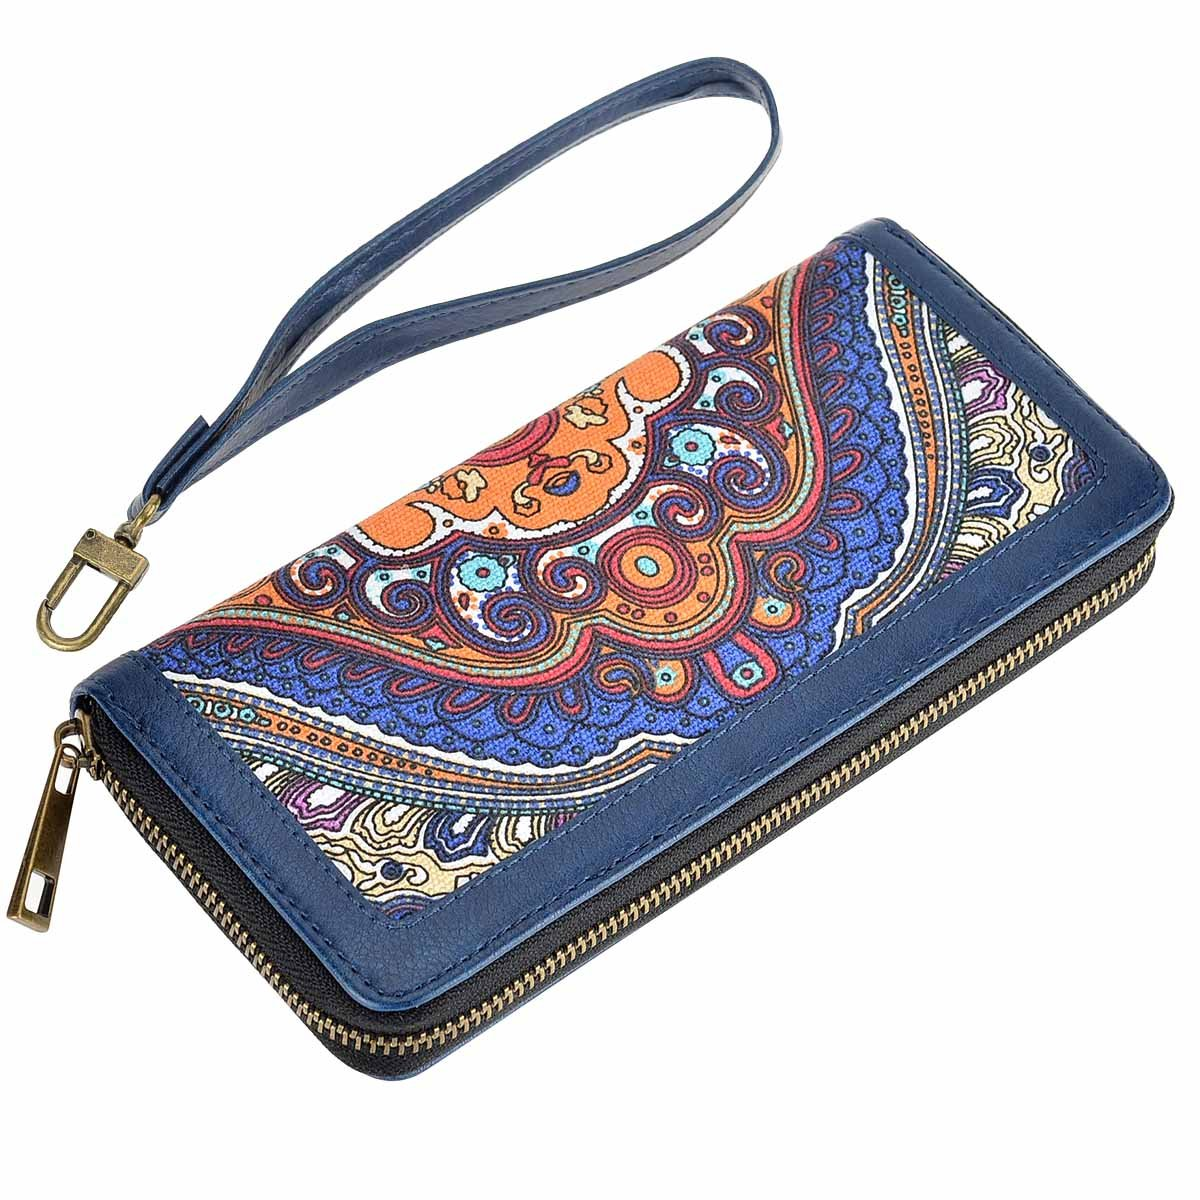 HAWEE Long Clutch Wallet PU Leather Zipper Purse with Wristlets for Card/Cellphone/Coin/Cash, Grey Linen+Brown HW-CS-AX119-BW